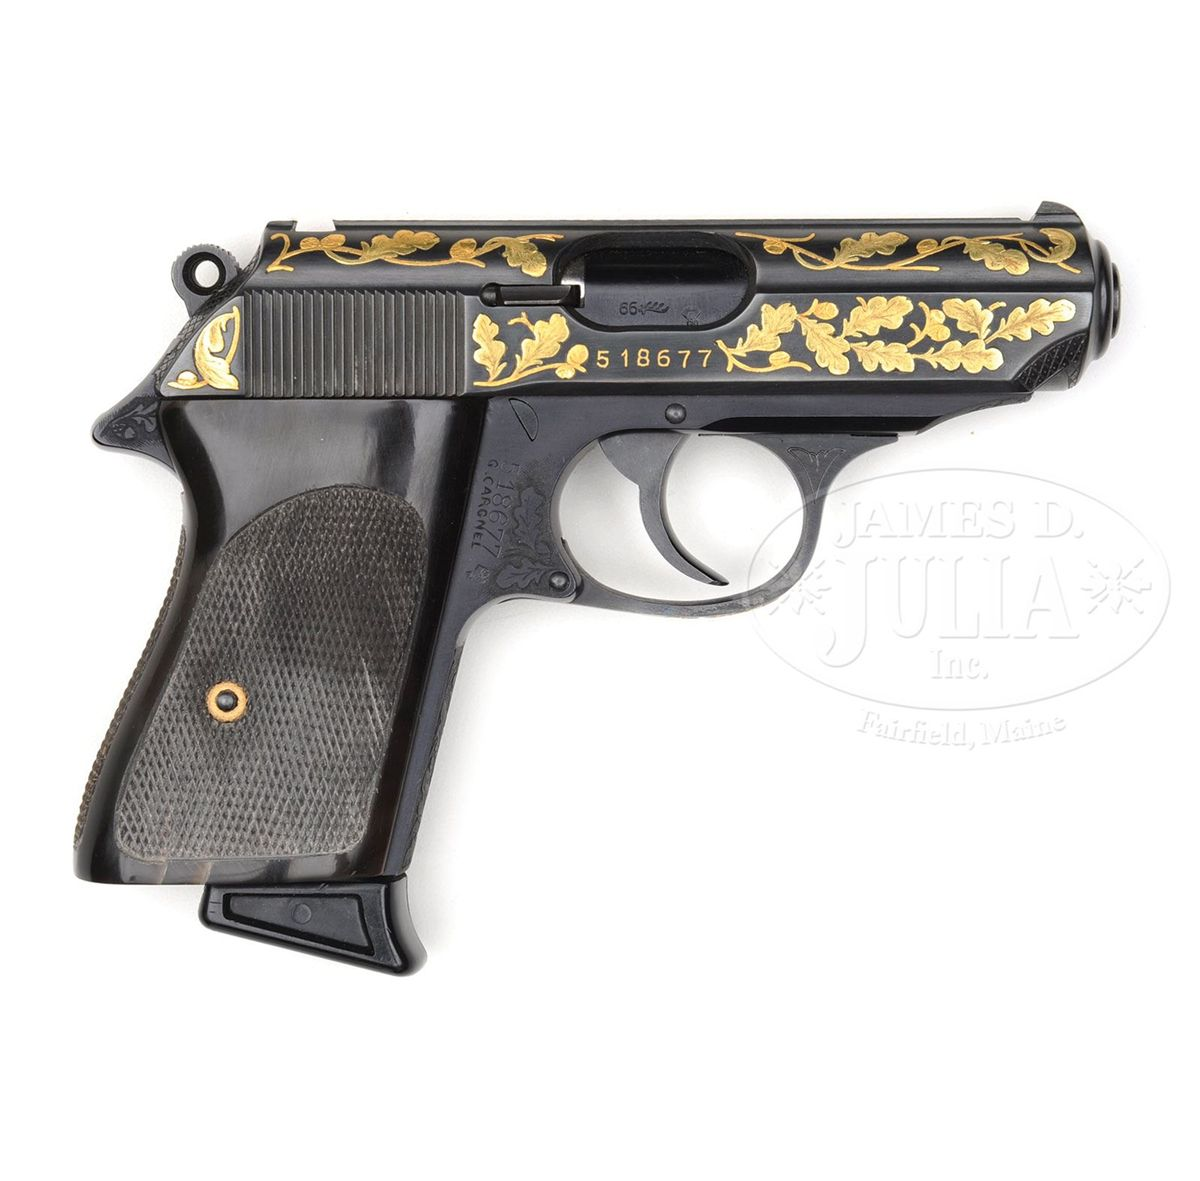 FABULOUS CUSTOM ENGRAVED WALTHER PPK-DURAL BY GINO CARGNELL